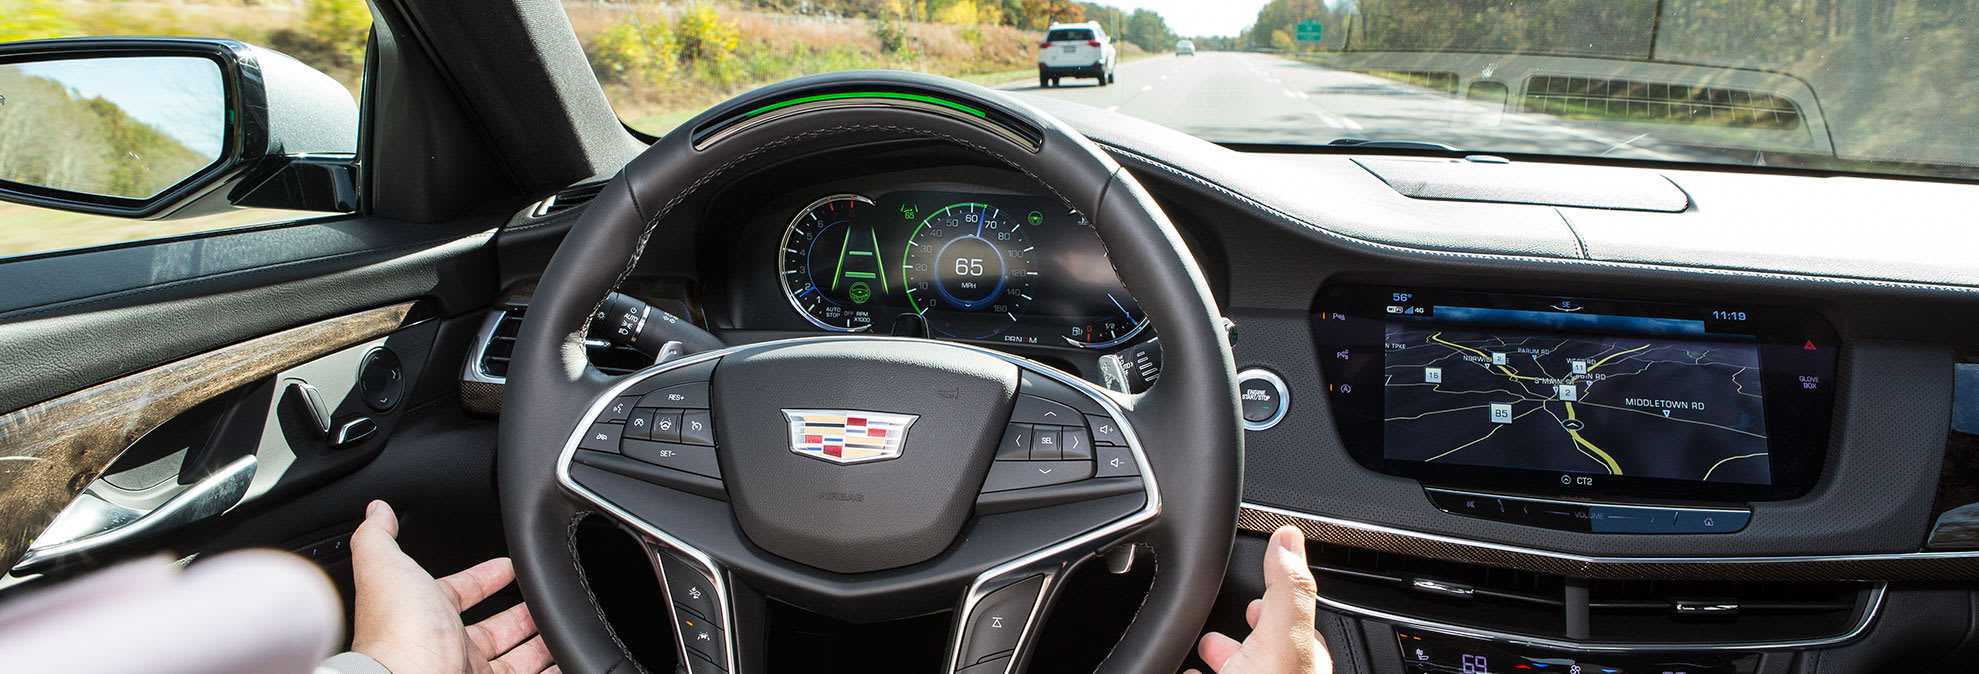 Cadillac super cruise may lead to safe hands free driving